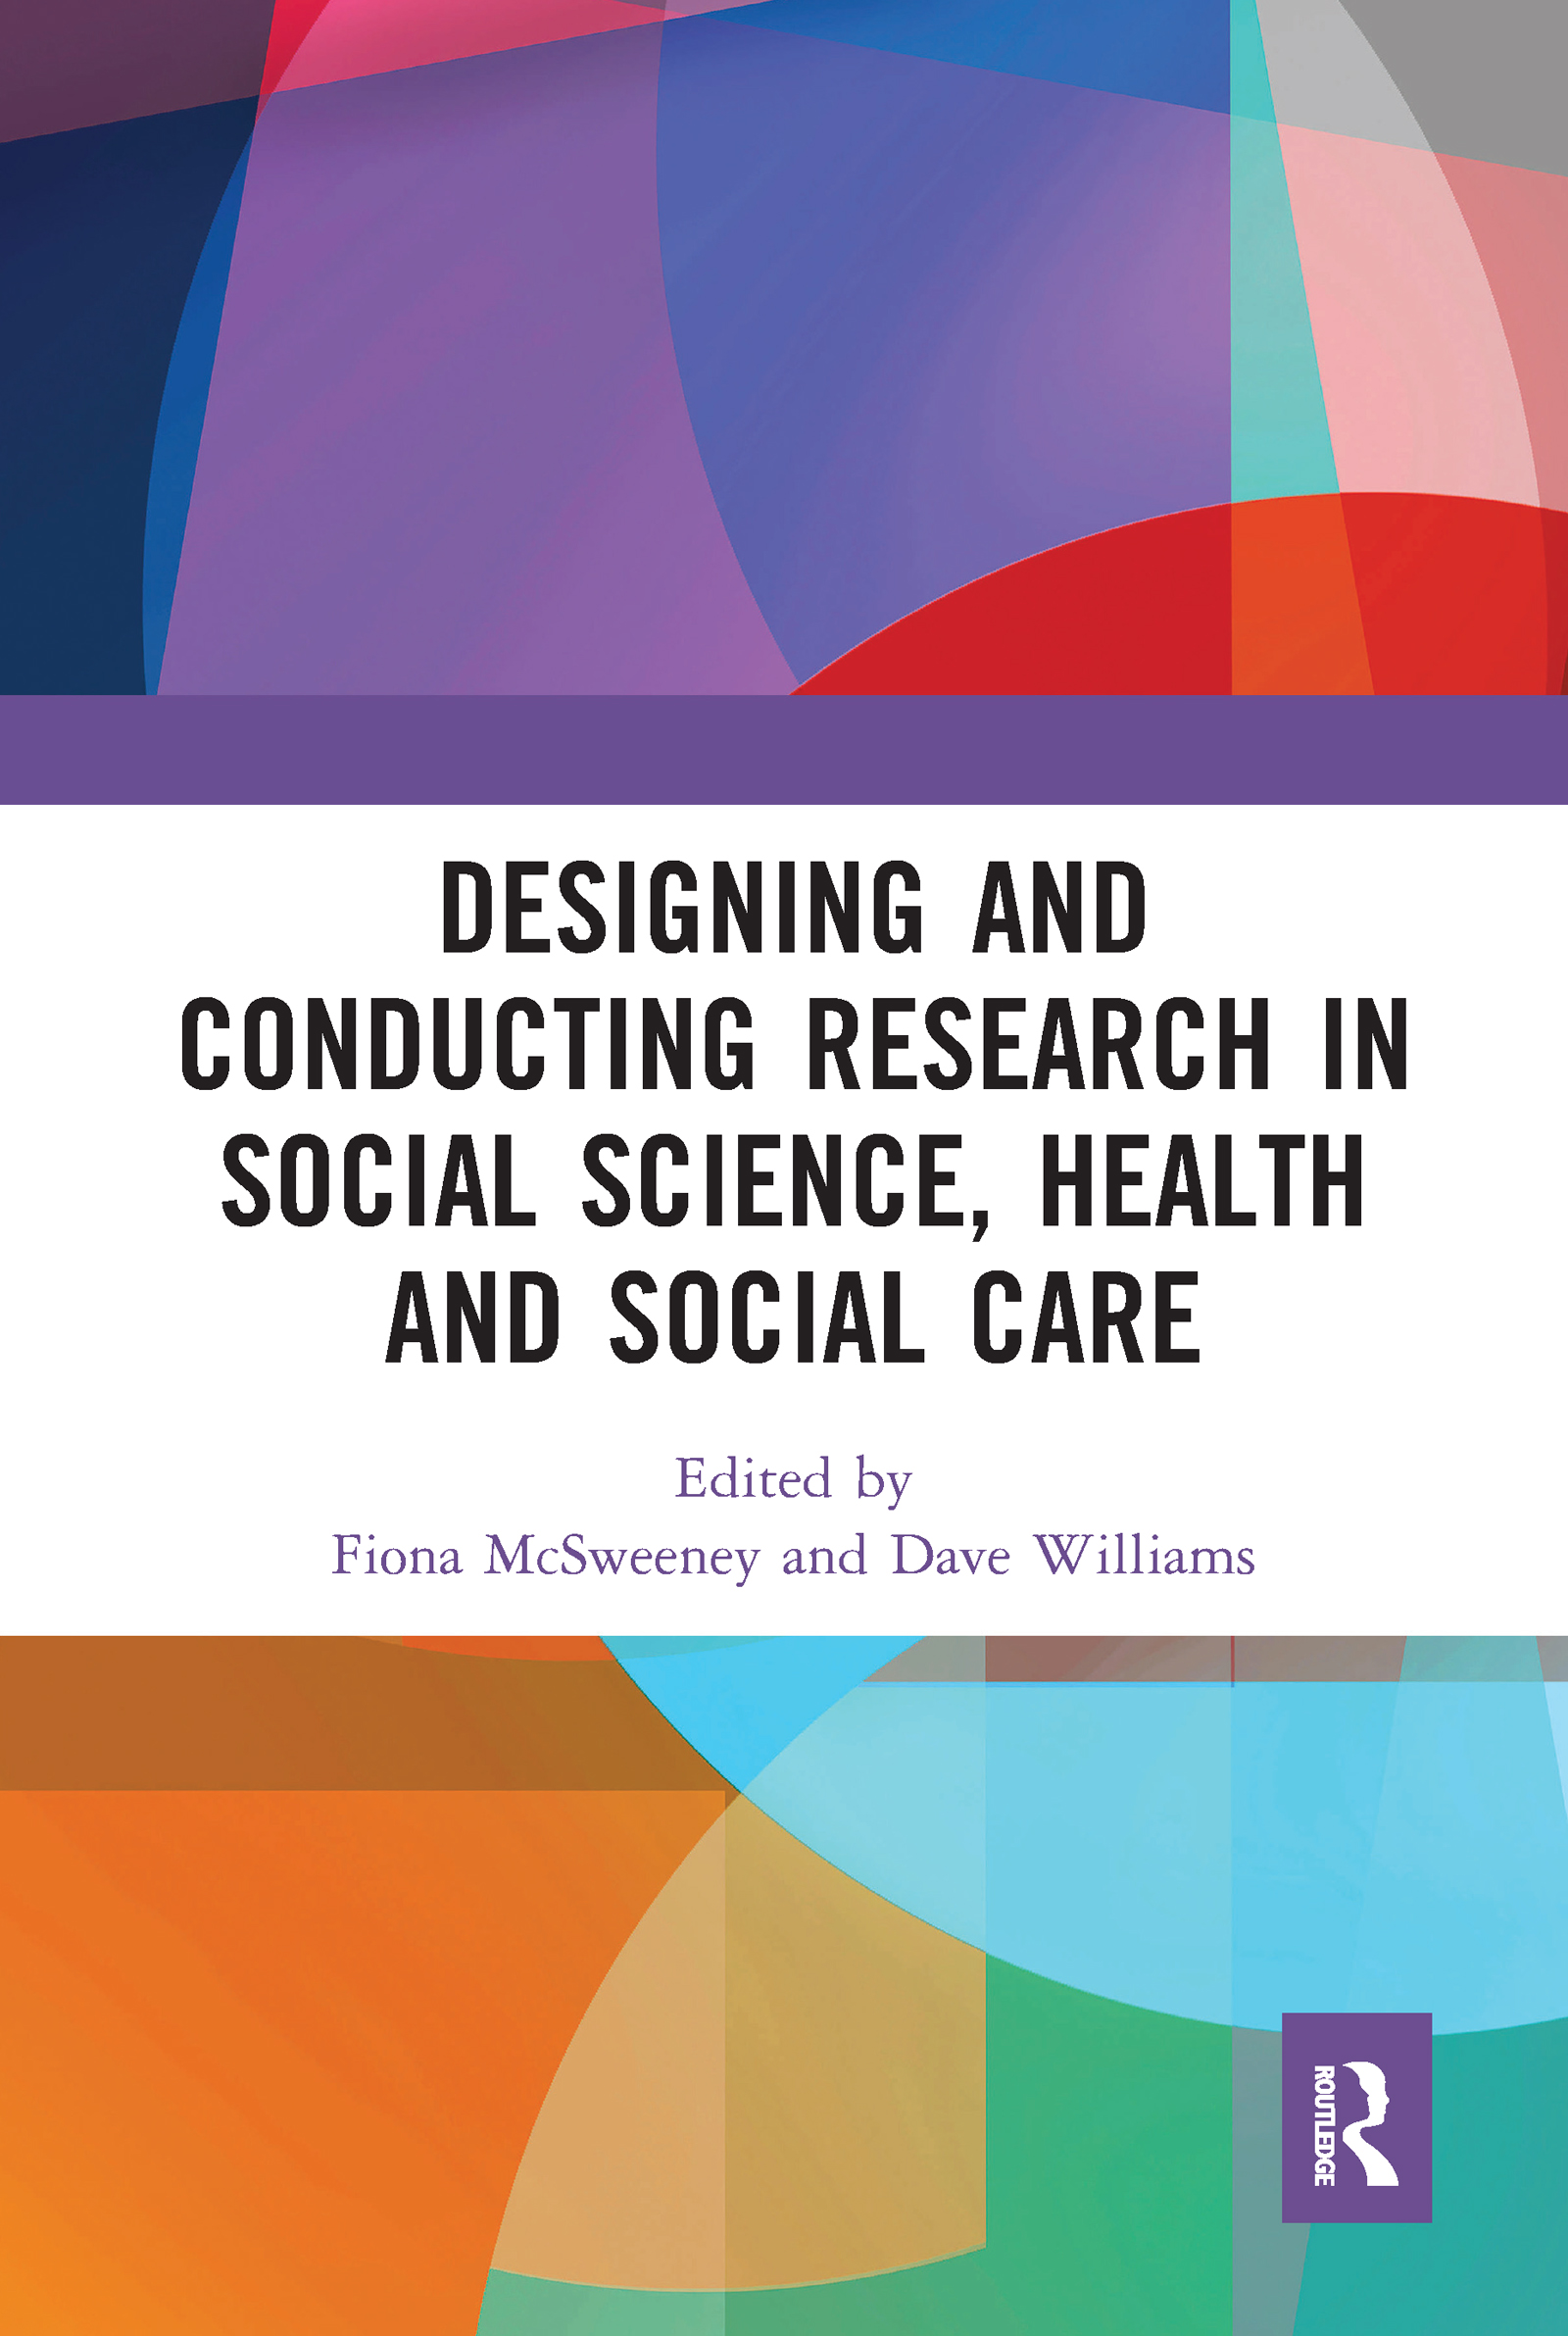 Designing and Conducting Research in Social Science, Health and Social Care